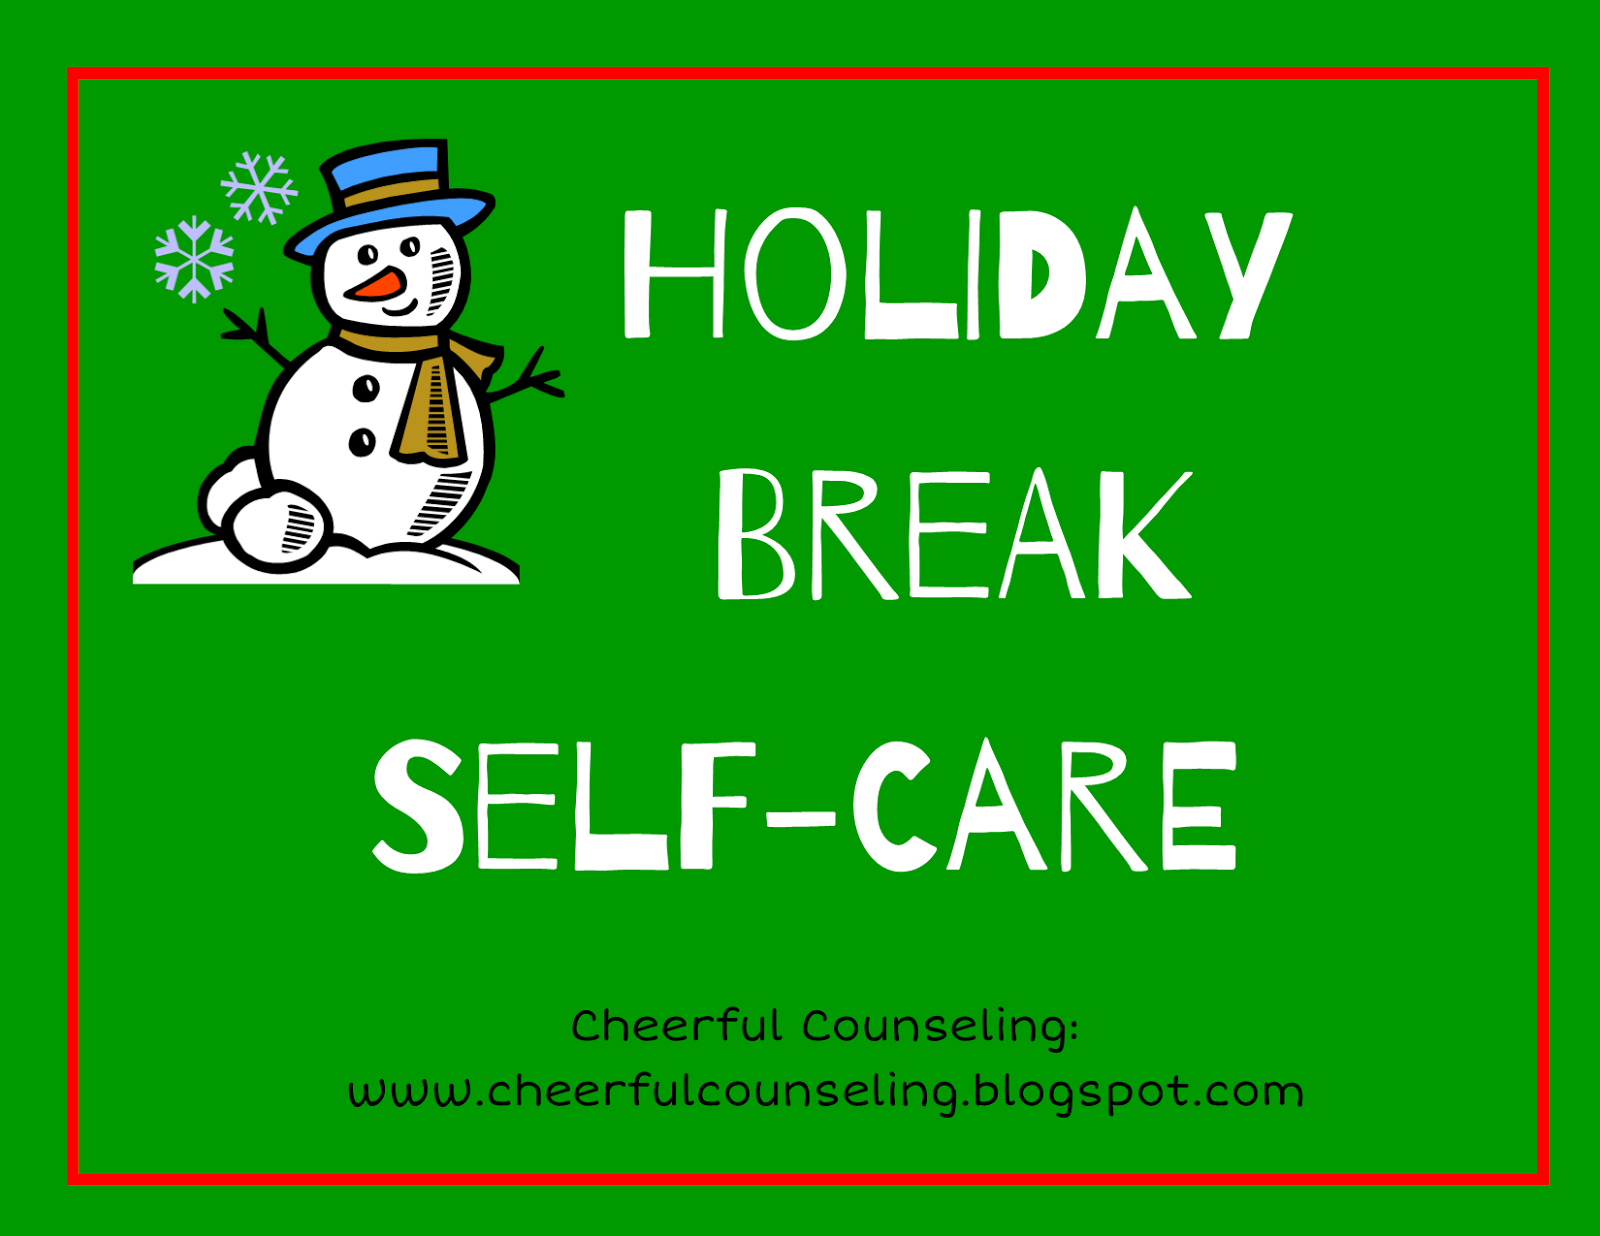 Cheerful Counseling Holiday Break Self Care